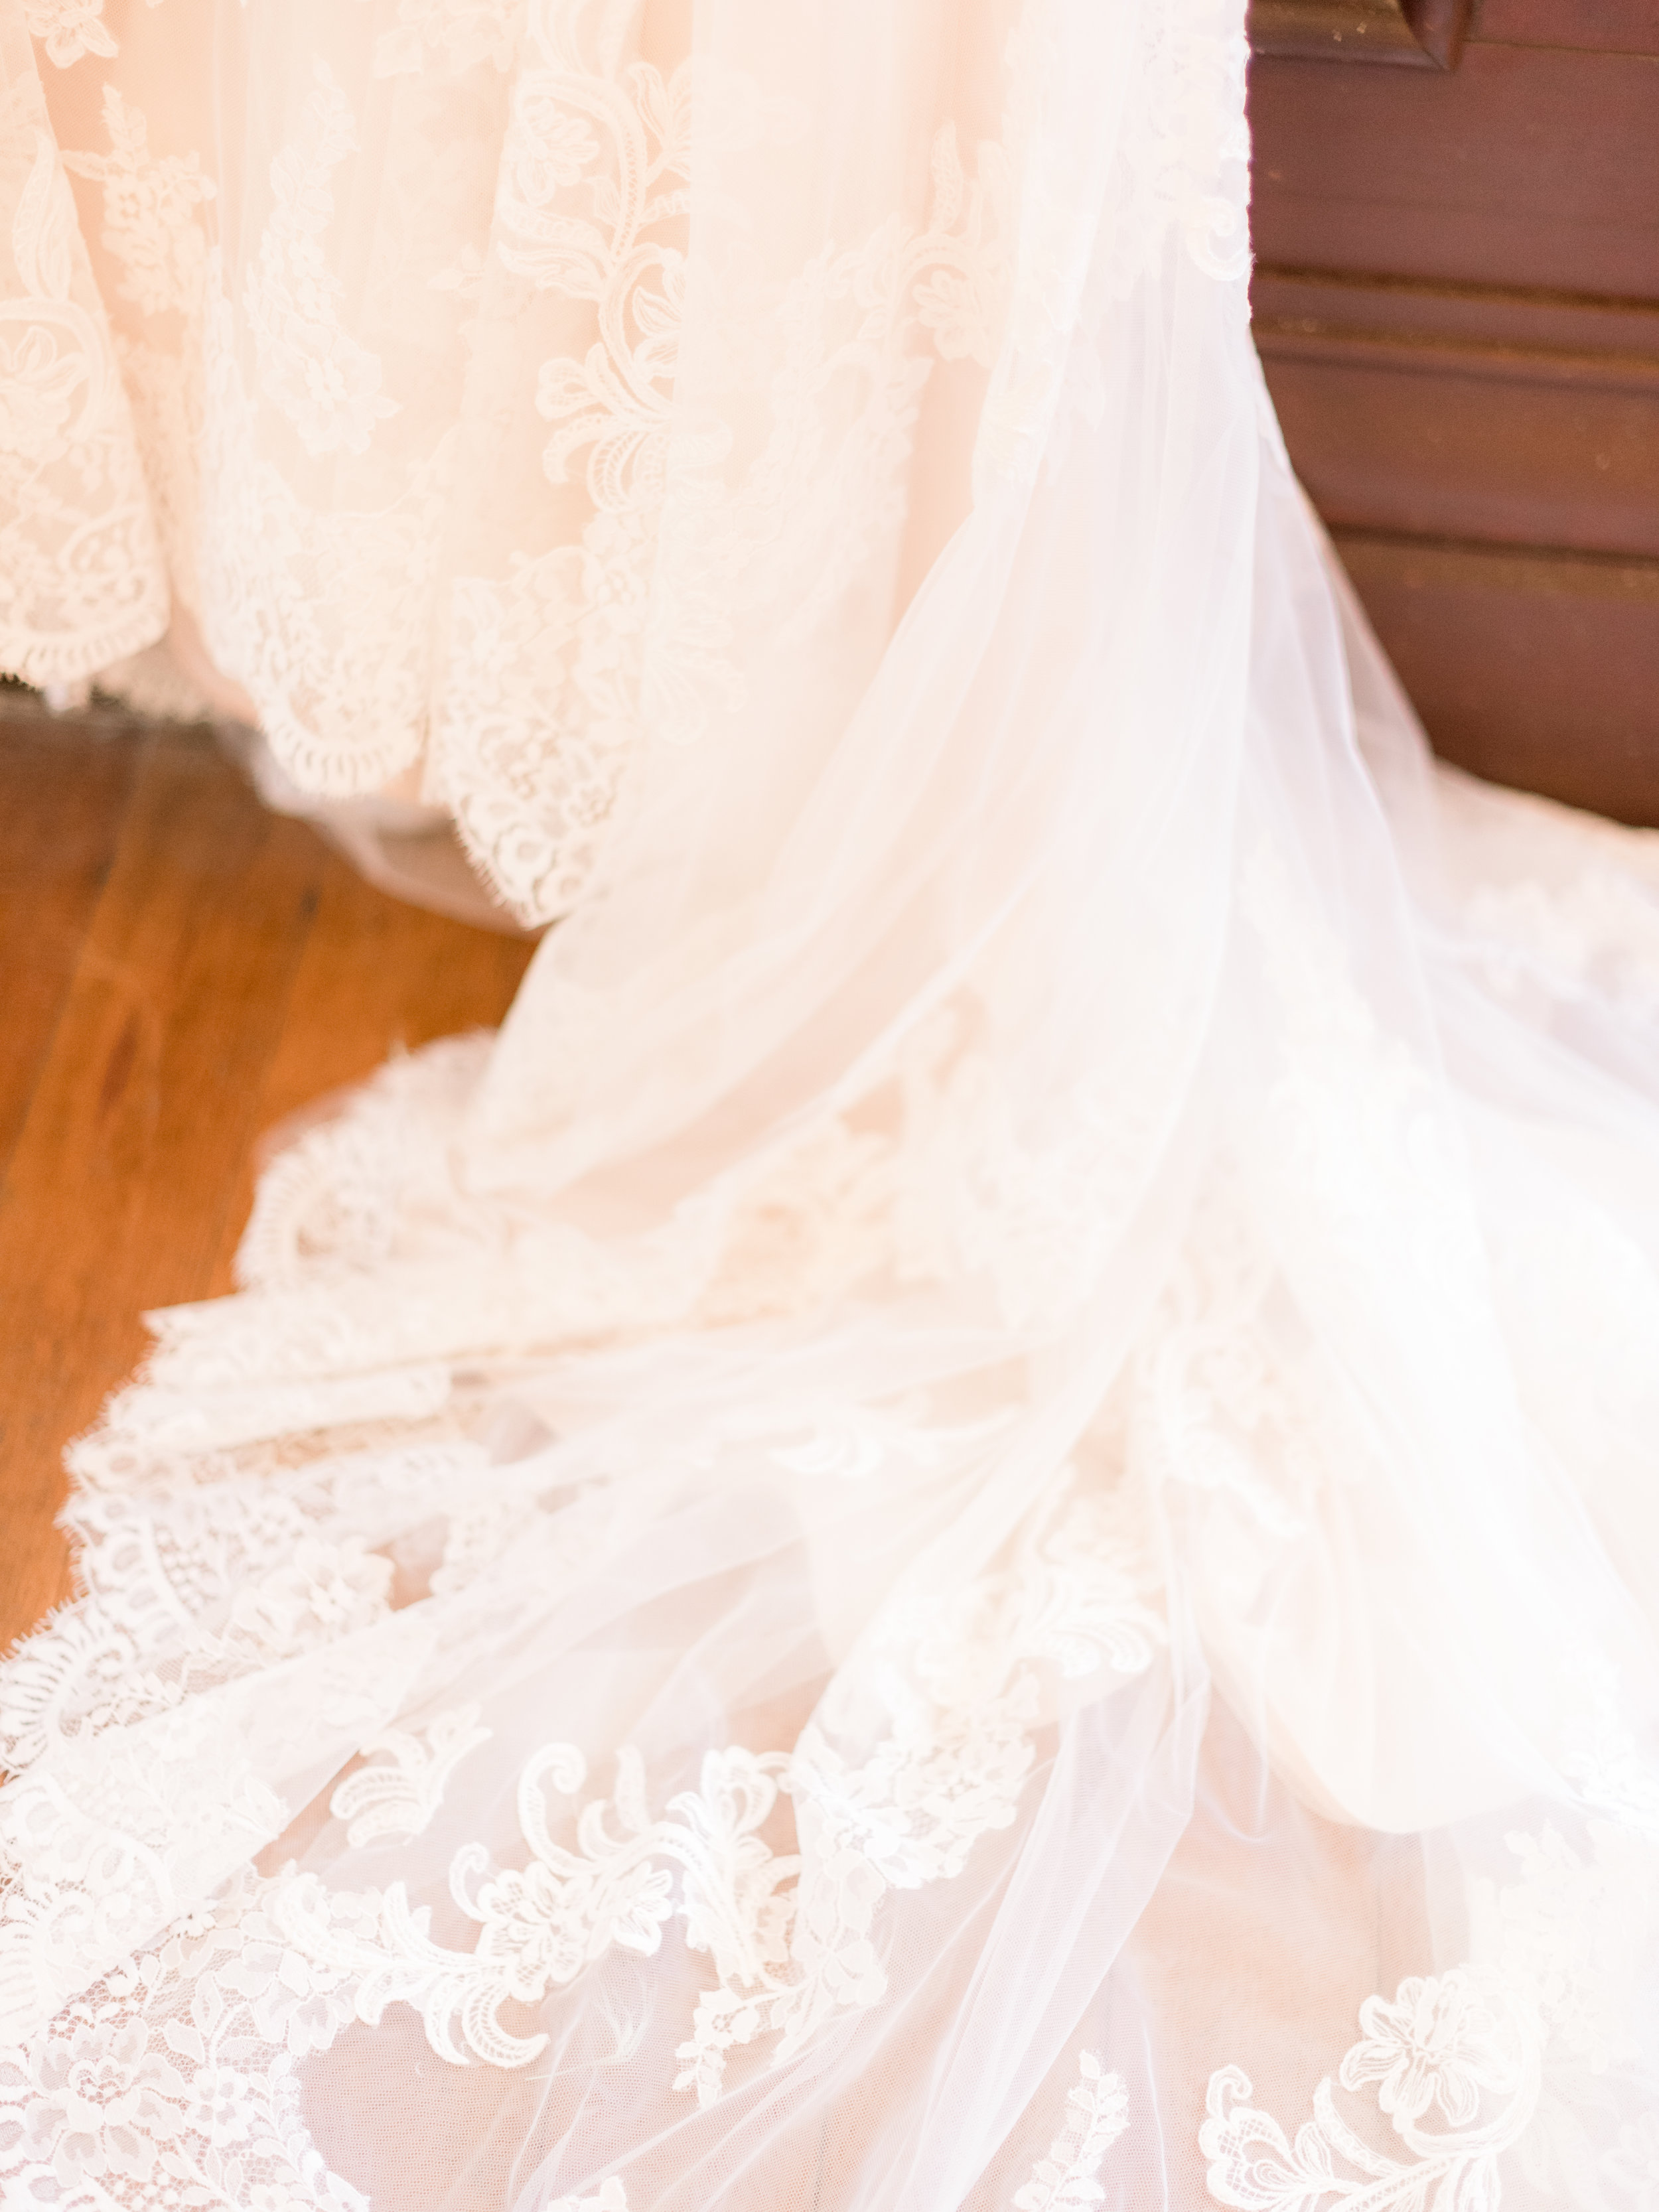 detailing-of-lace-wedding-gown.jpg